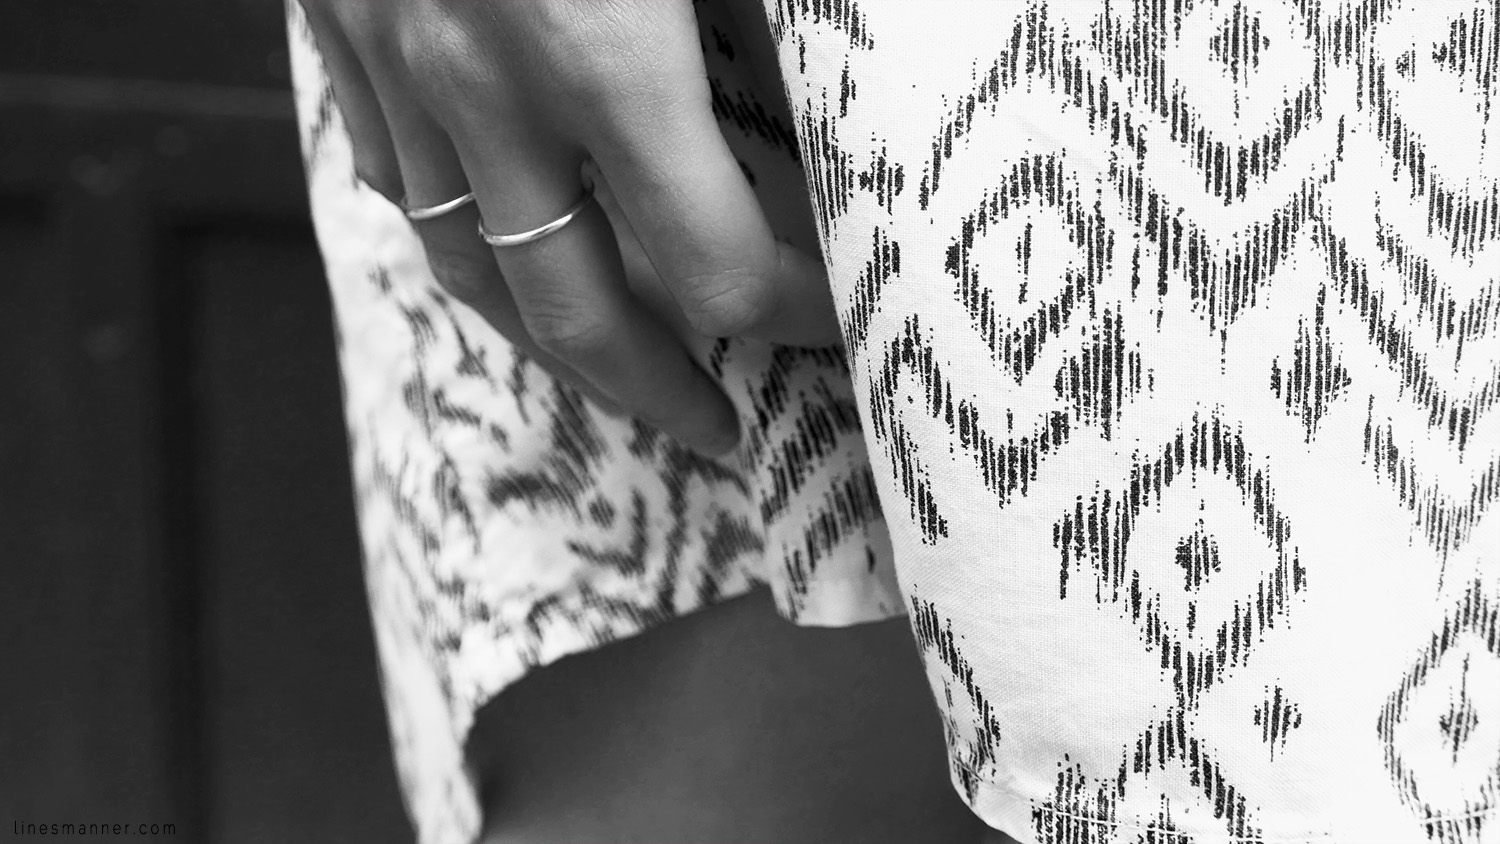 Lines-Manner-Remind-2015-Minimal-Essential-Outfit-Inspiration-Blog-Timeless-Year-Seasons-Details-Travel-Fashion-Versatile-Clean-Sleek-Quality-36